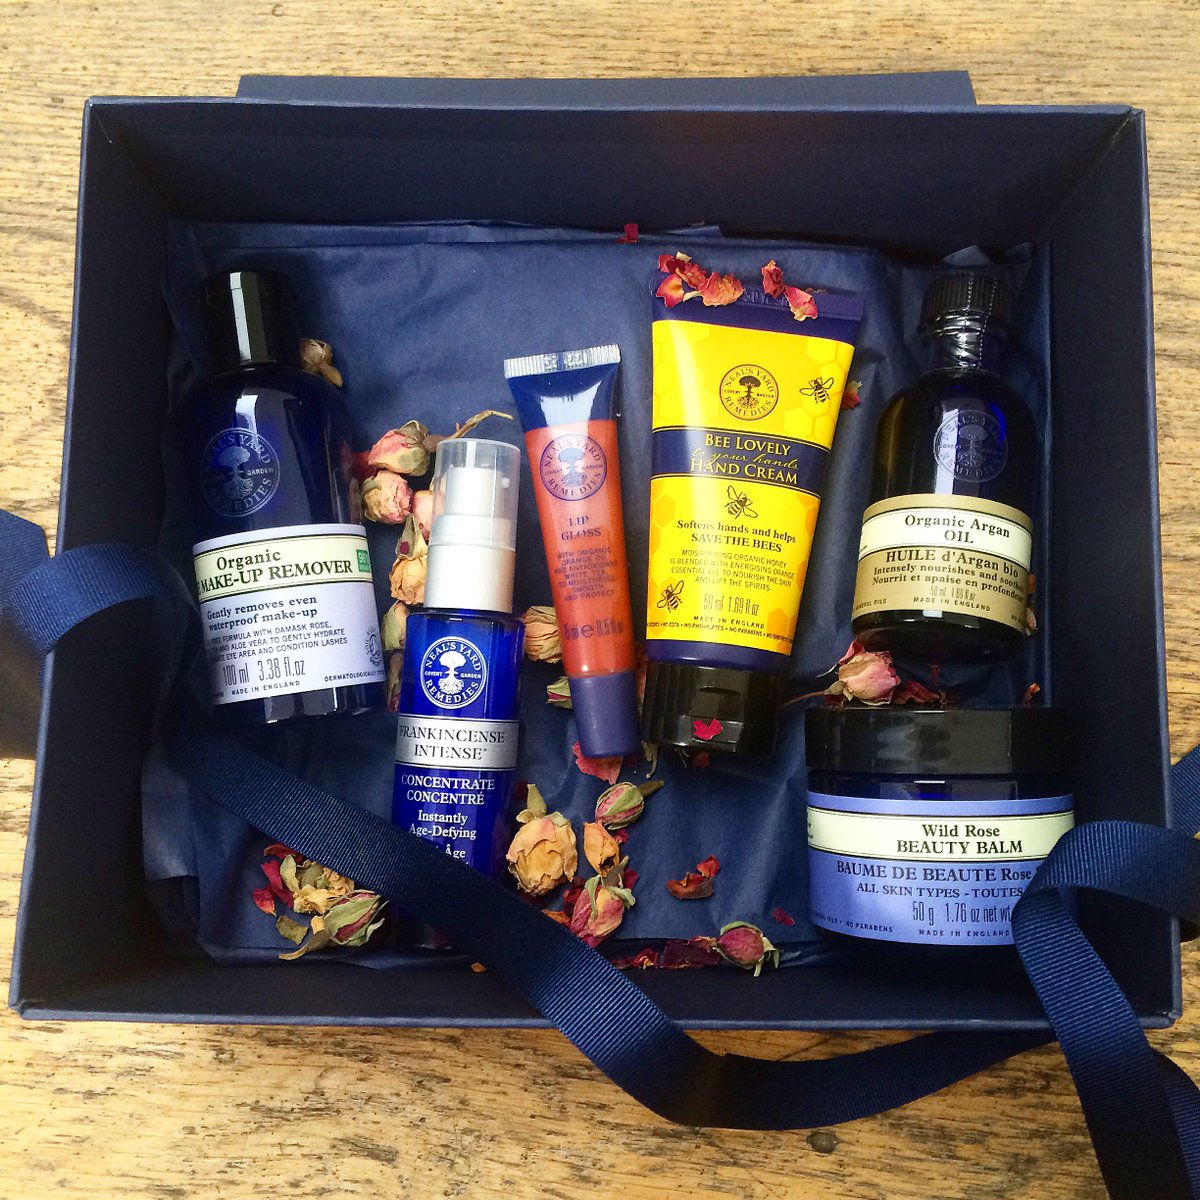 Happy Birthday NYR Organic who turns 6! Celebrate with us & RT and follow by midnight to win this gift! #NYROturns6 http://t.co/swCmfBhgP4